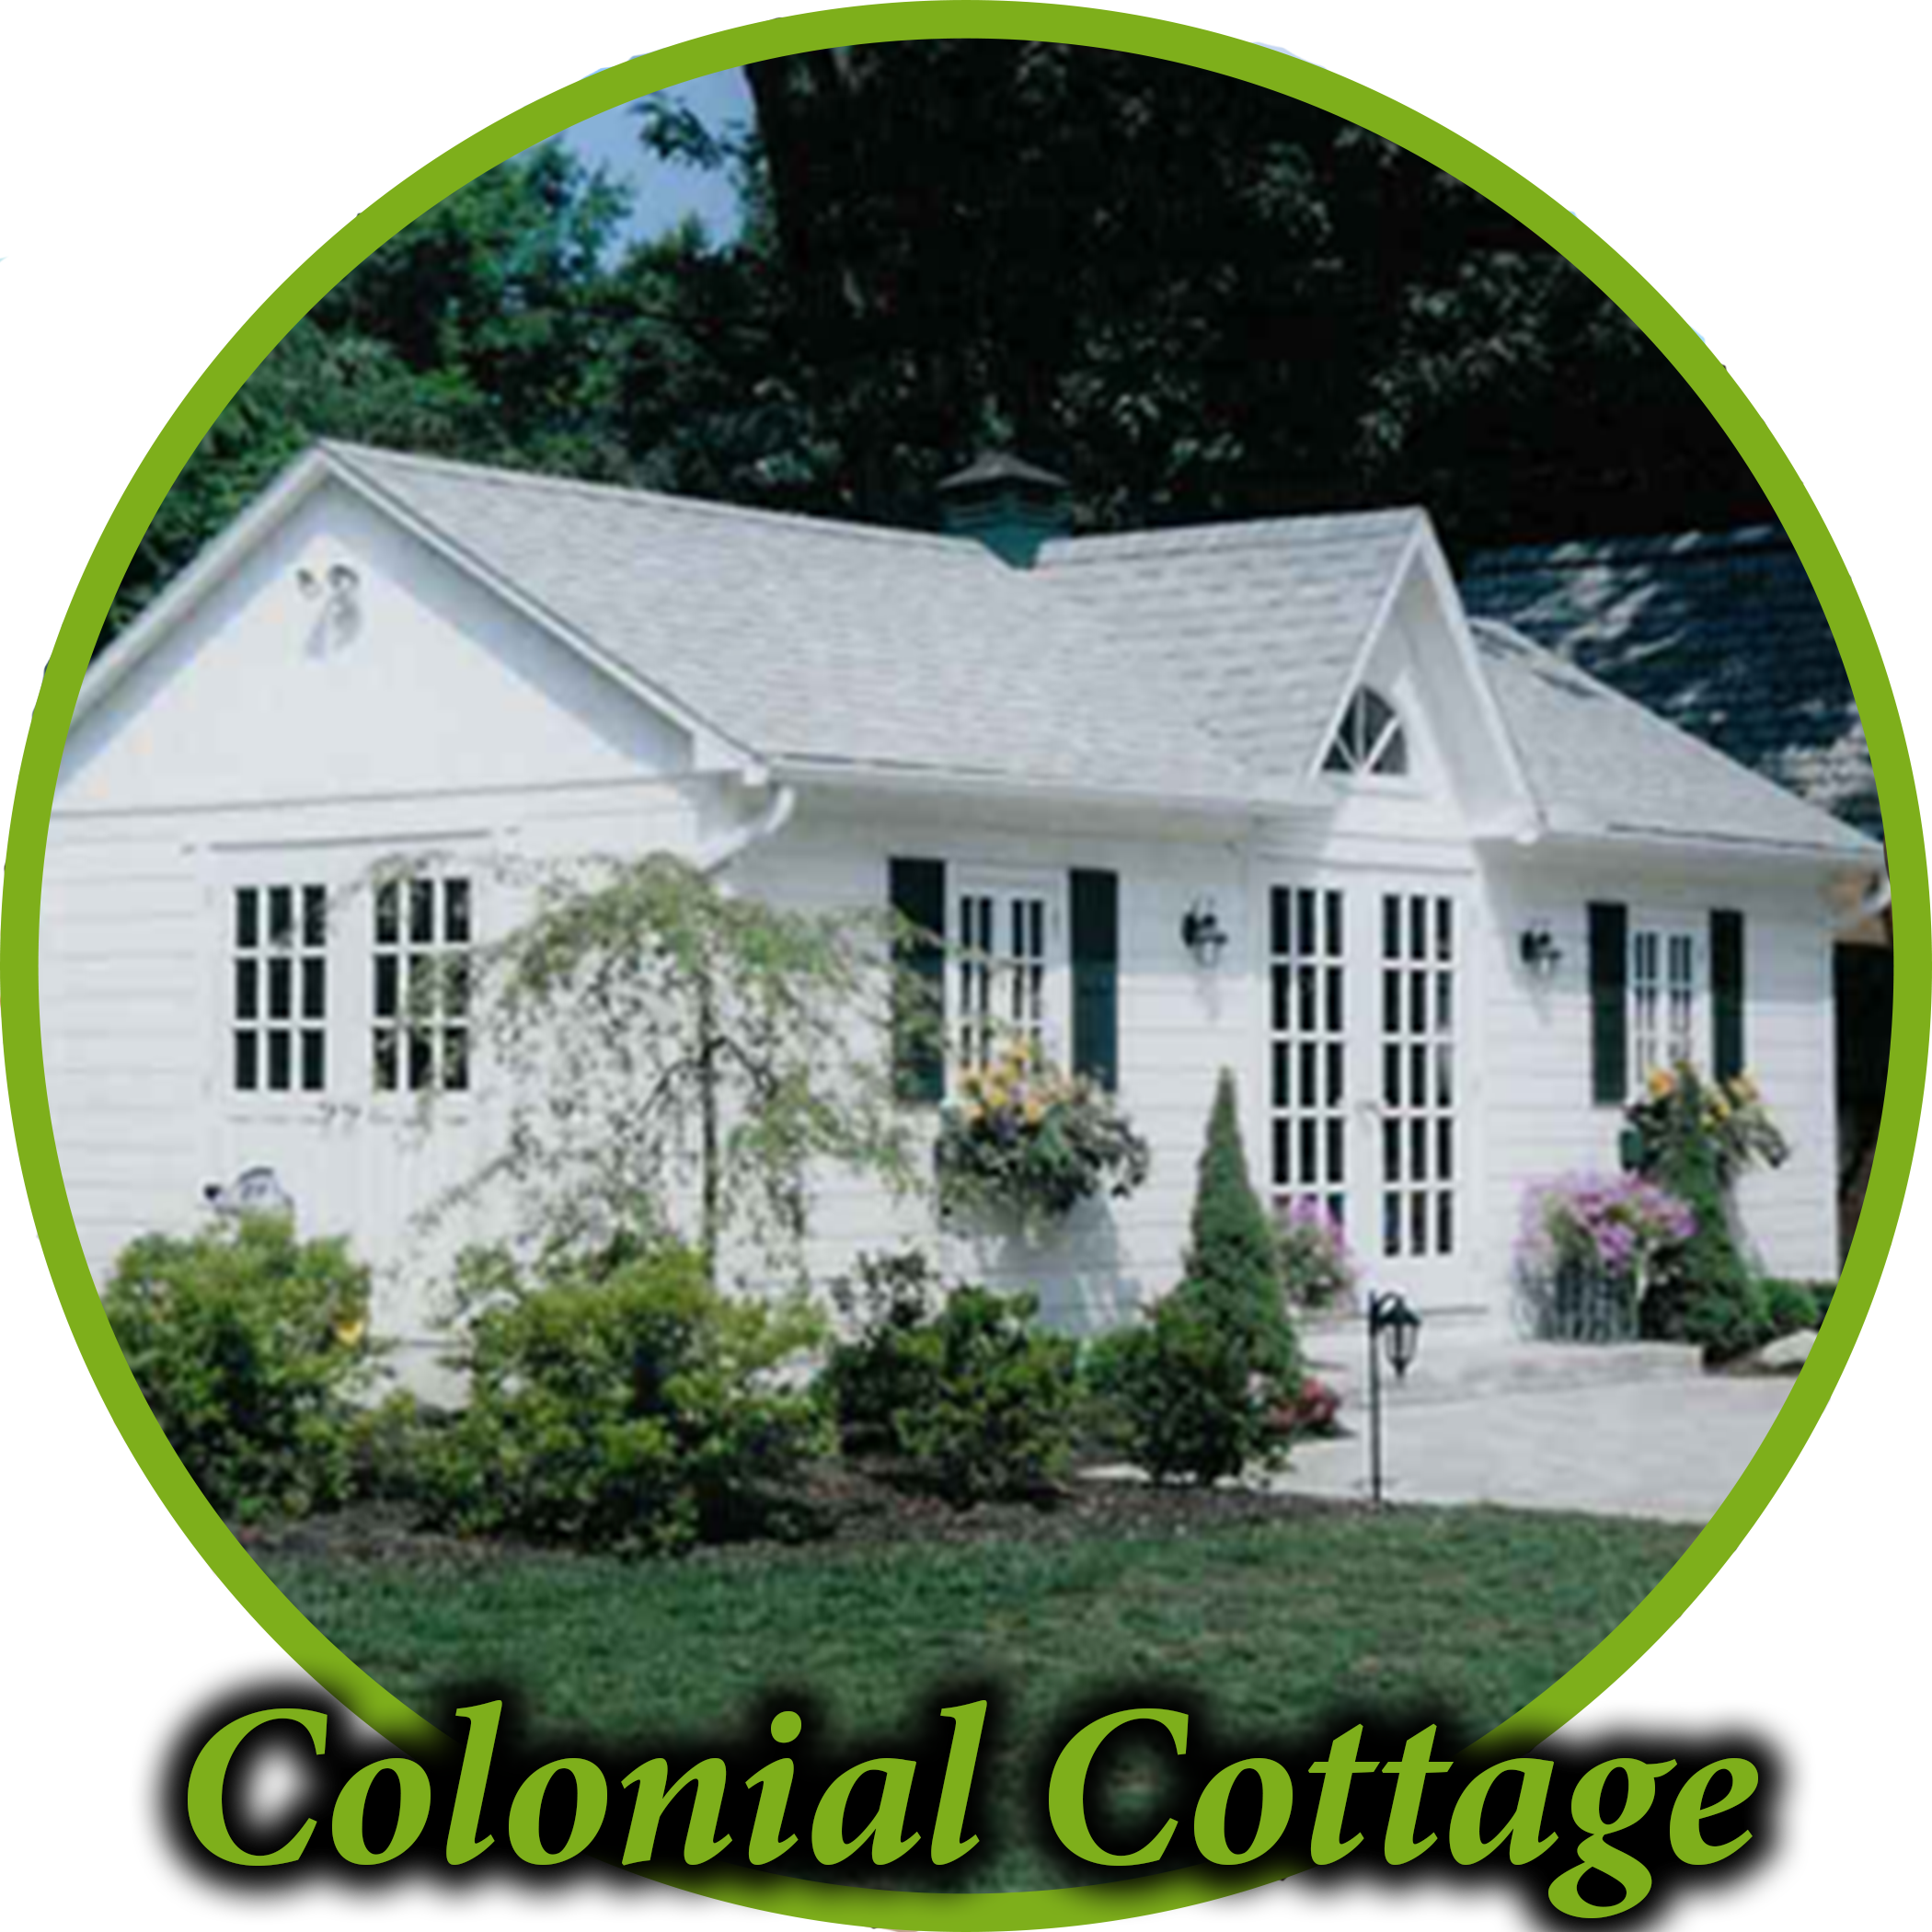 colonial cottage circle.png